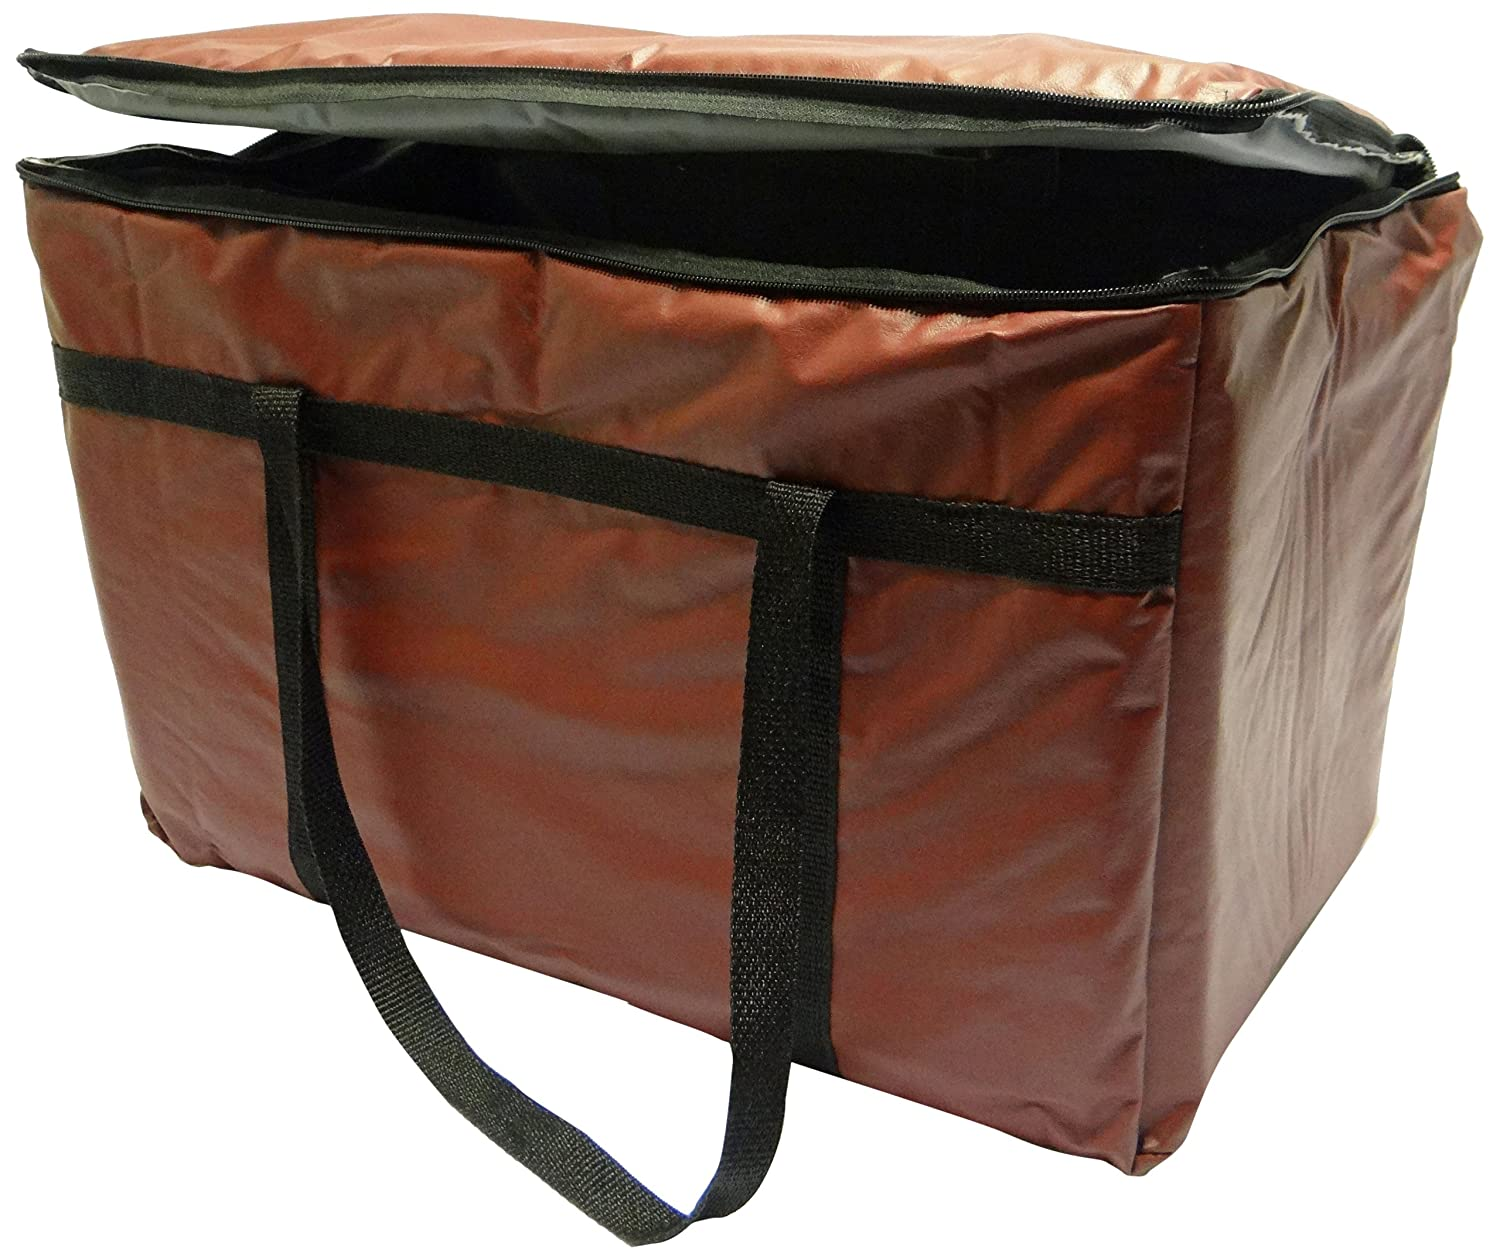 Phoenix 13-Inch by 22-Inch by 10-Inch Insulated Delivery Bags, Burgundy Phoenix Medical Press IDB-1322-BG